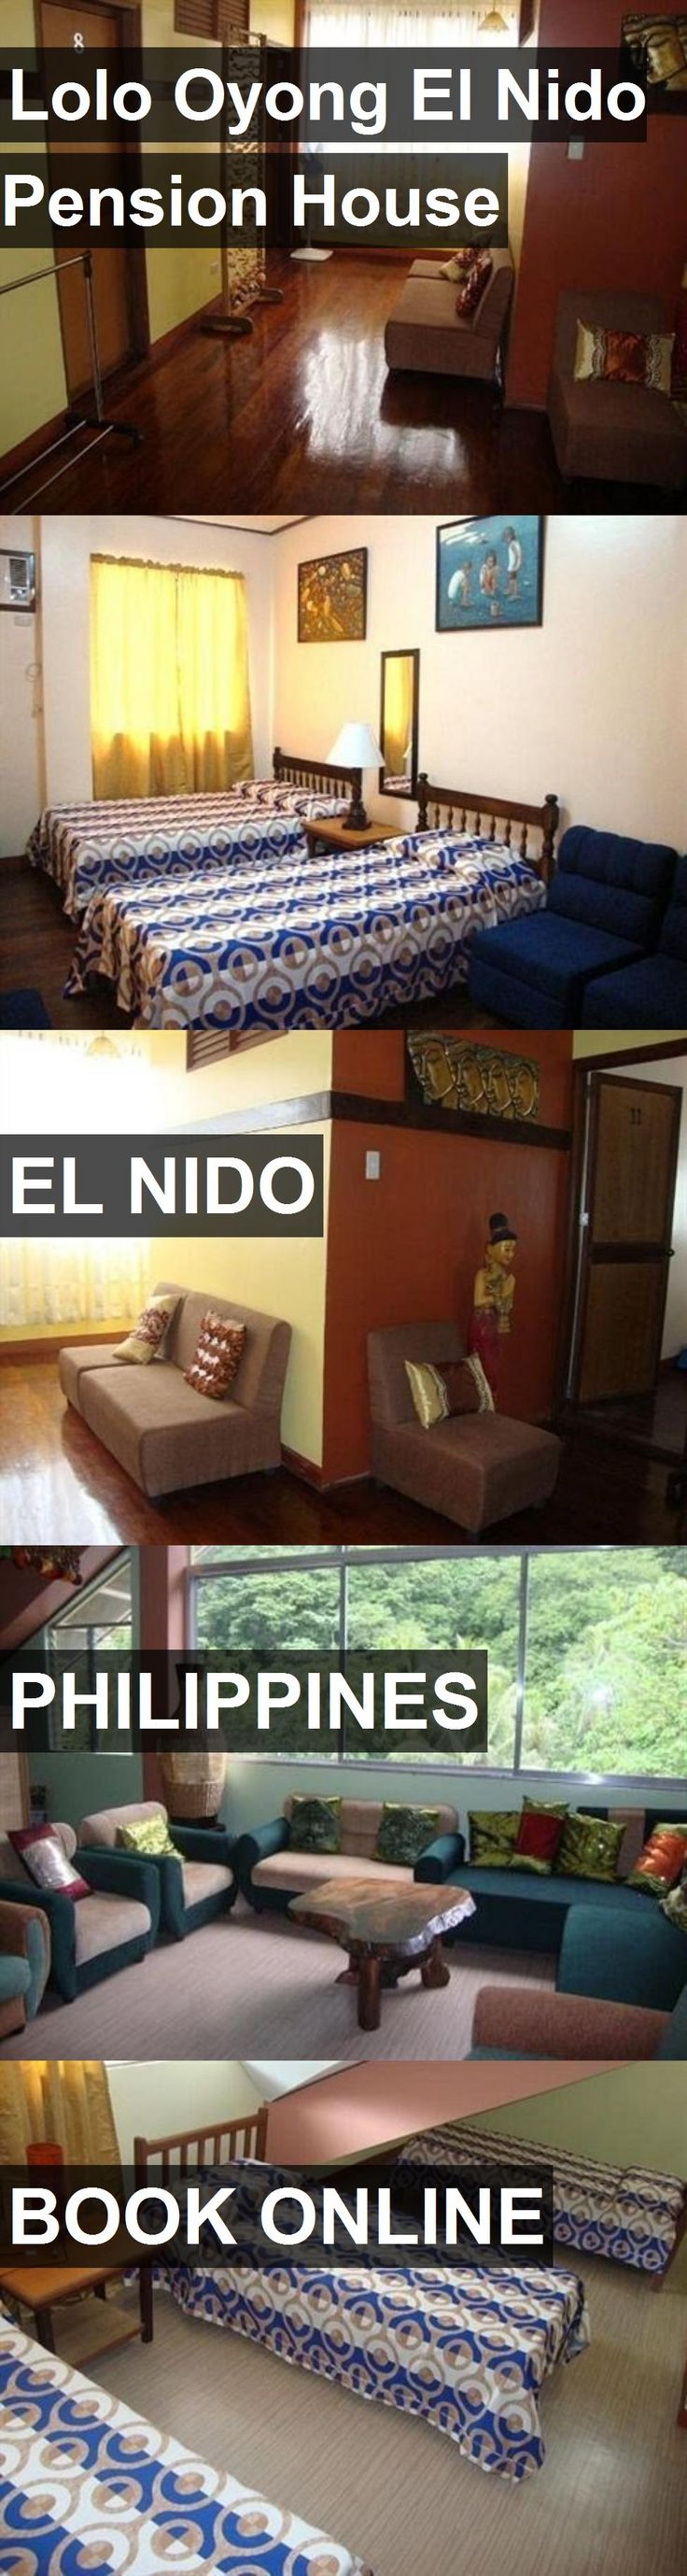 Best 25 Hotels in the philippines ideas on Pinterest